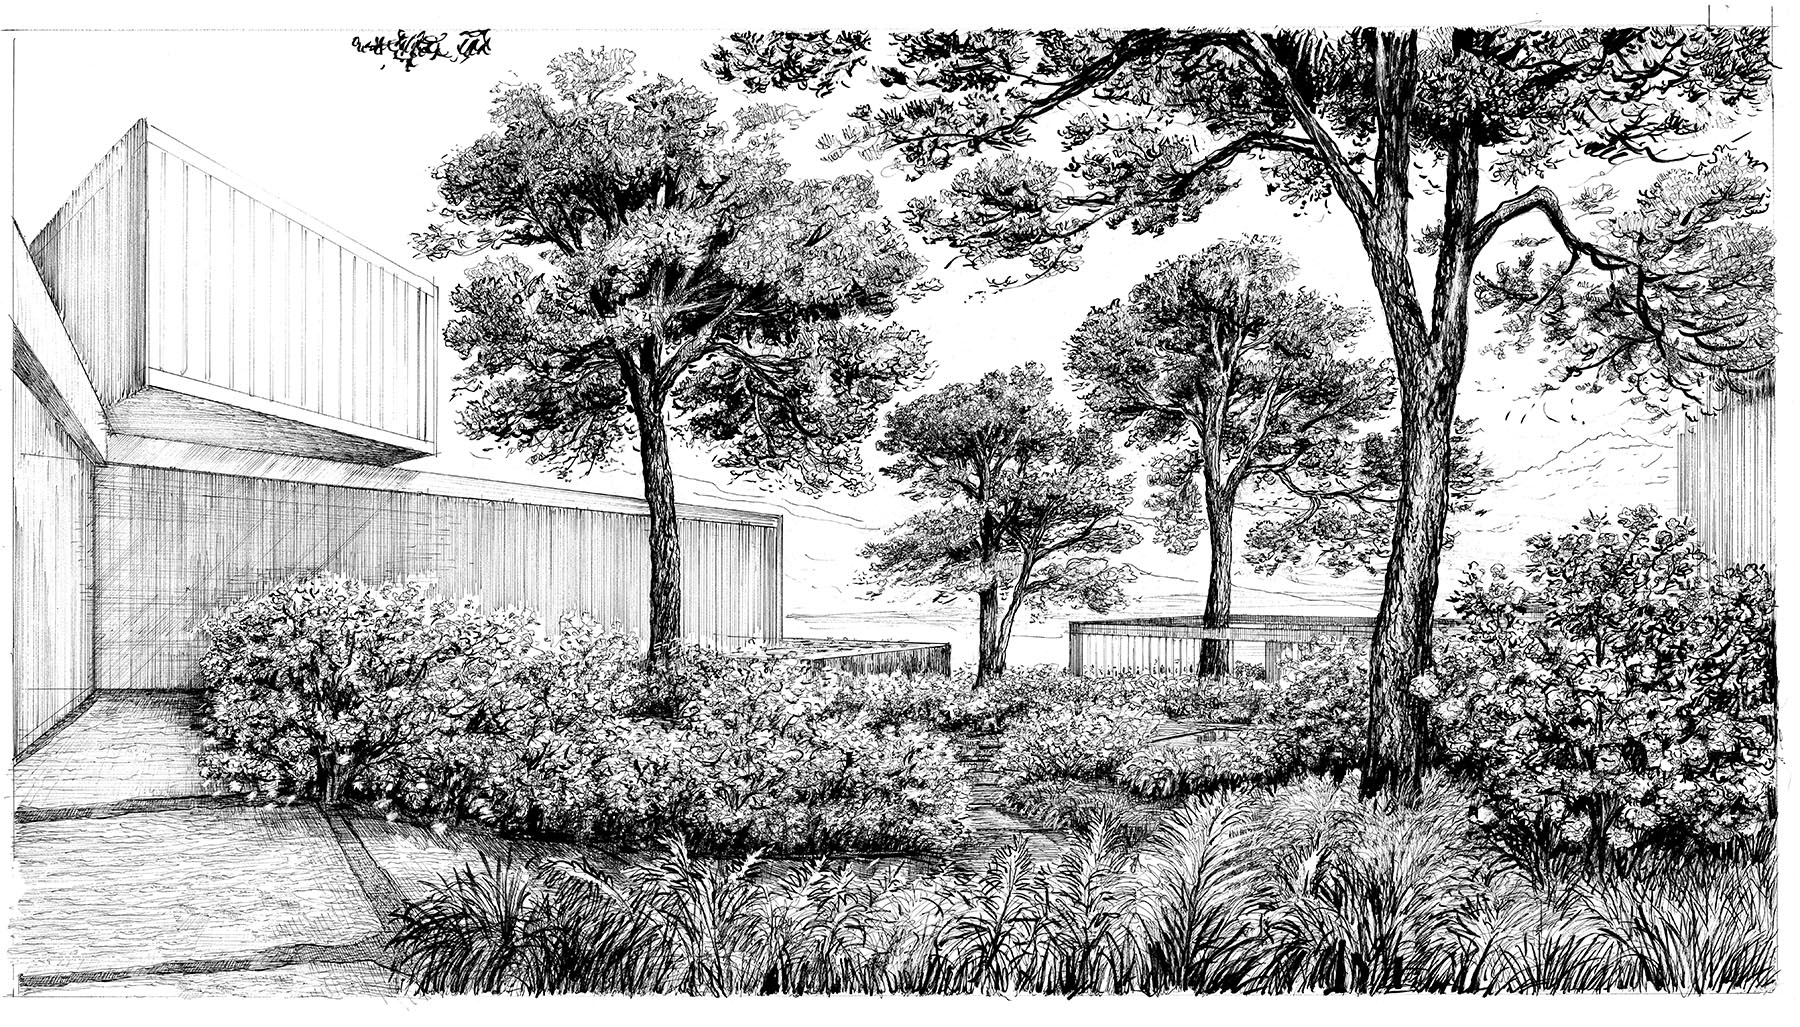 courtyard perspective (drawn by bruno moser/ enea landscape architecture)